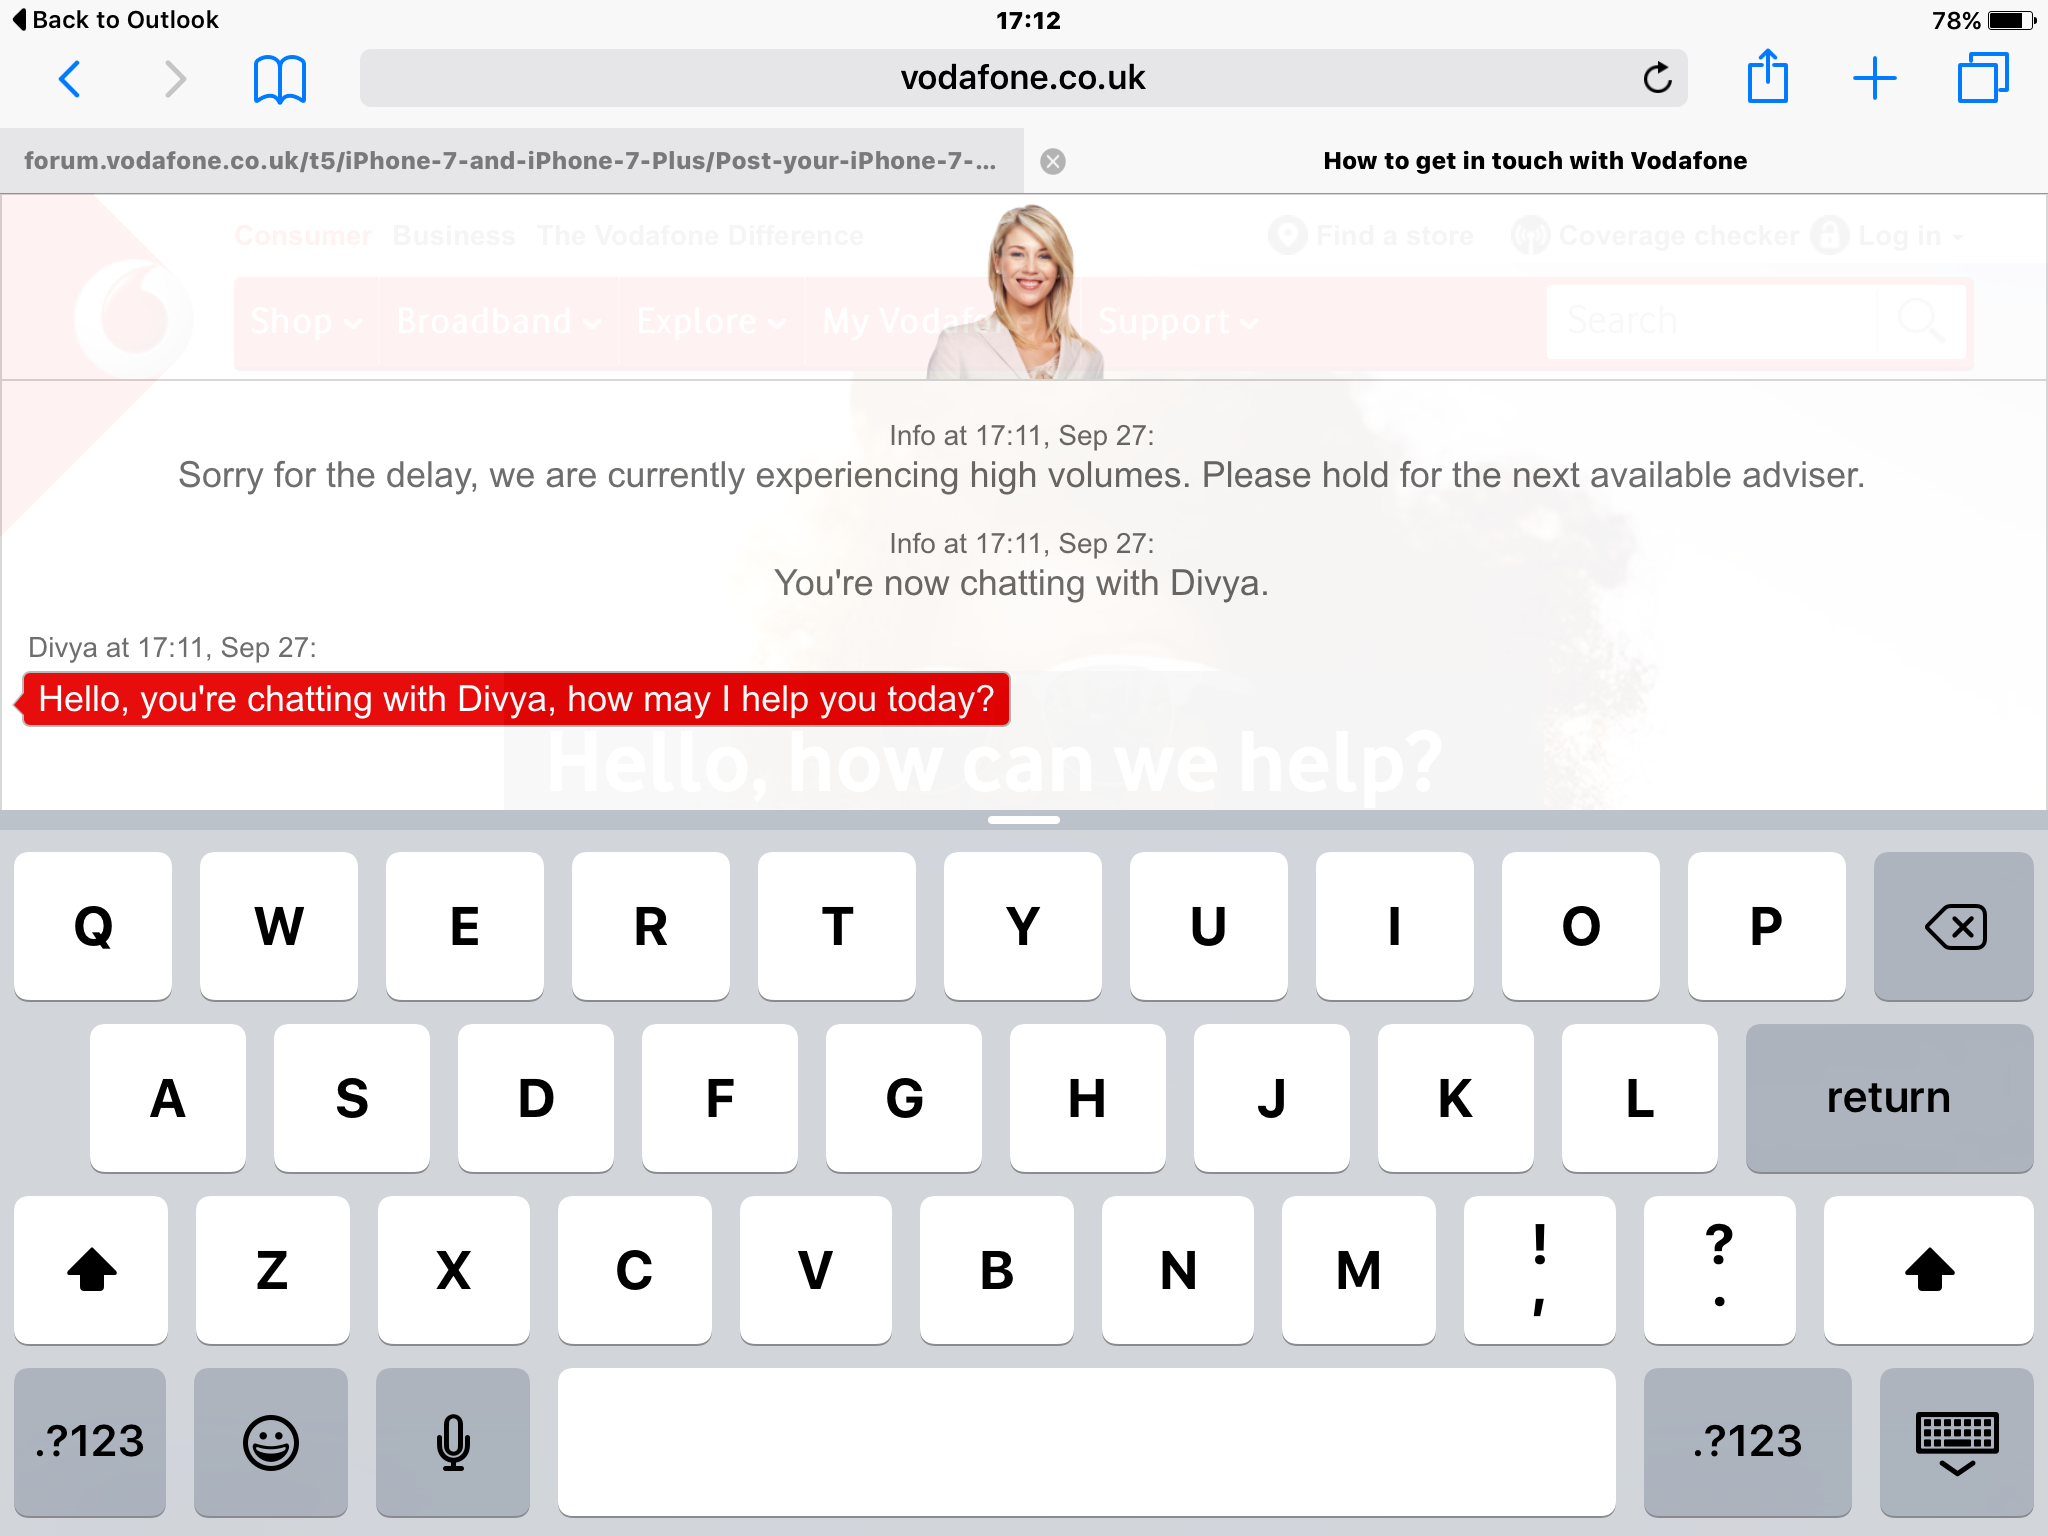 Contact vodafone live chat